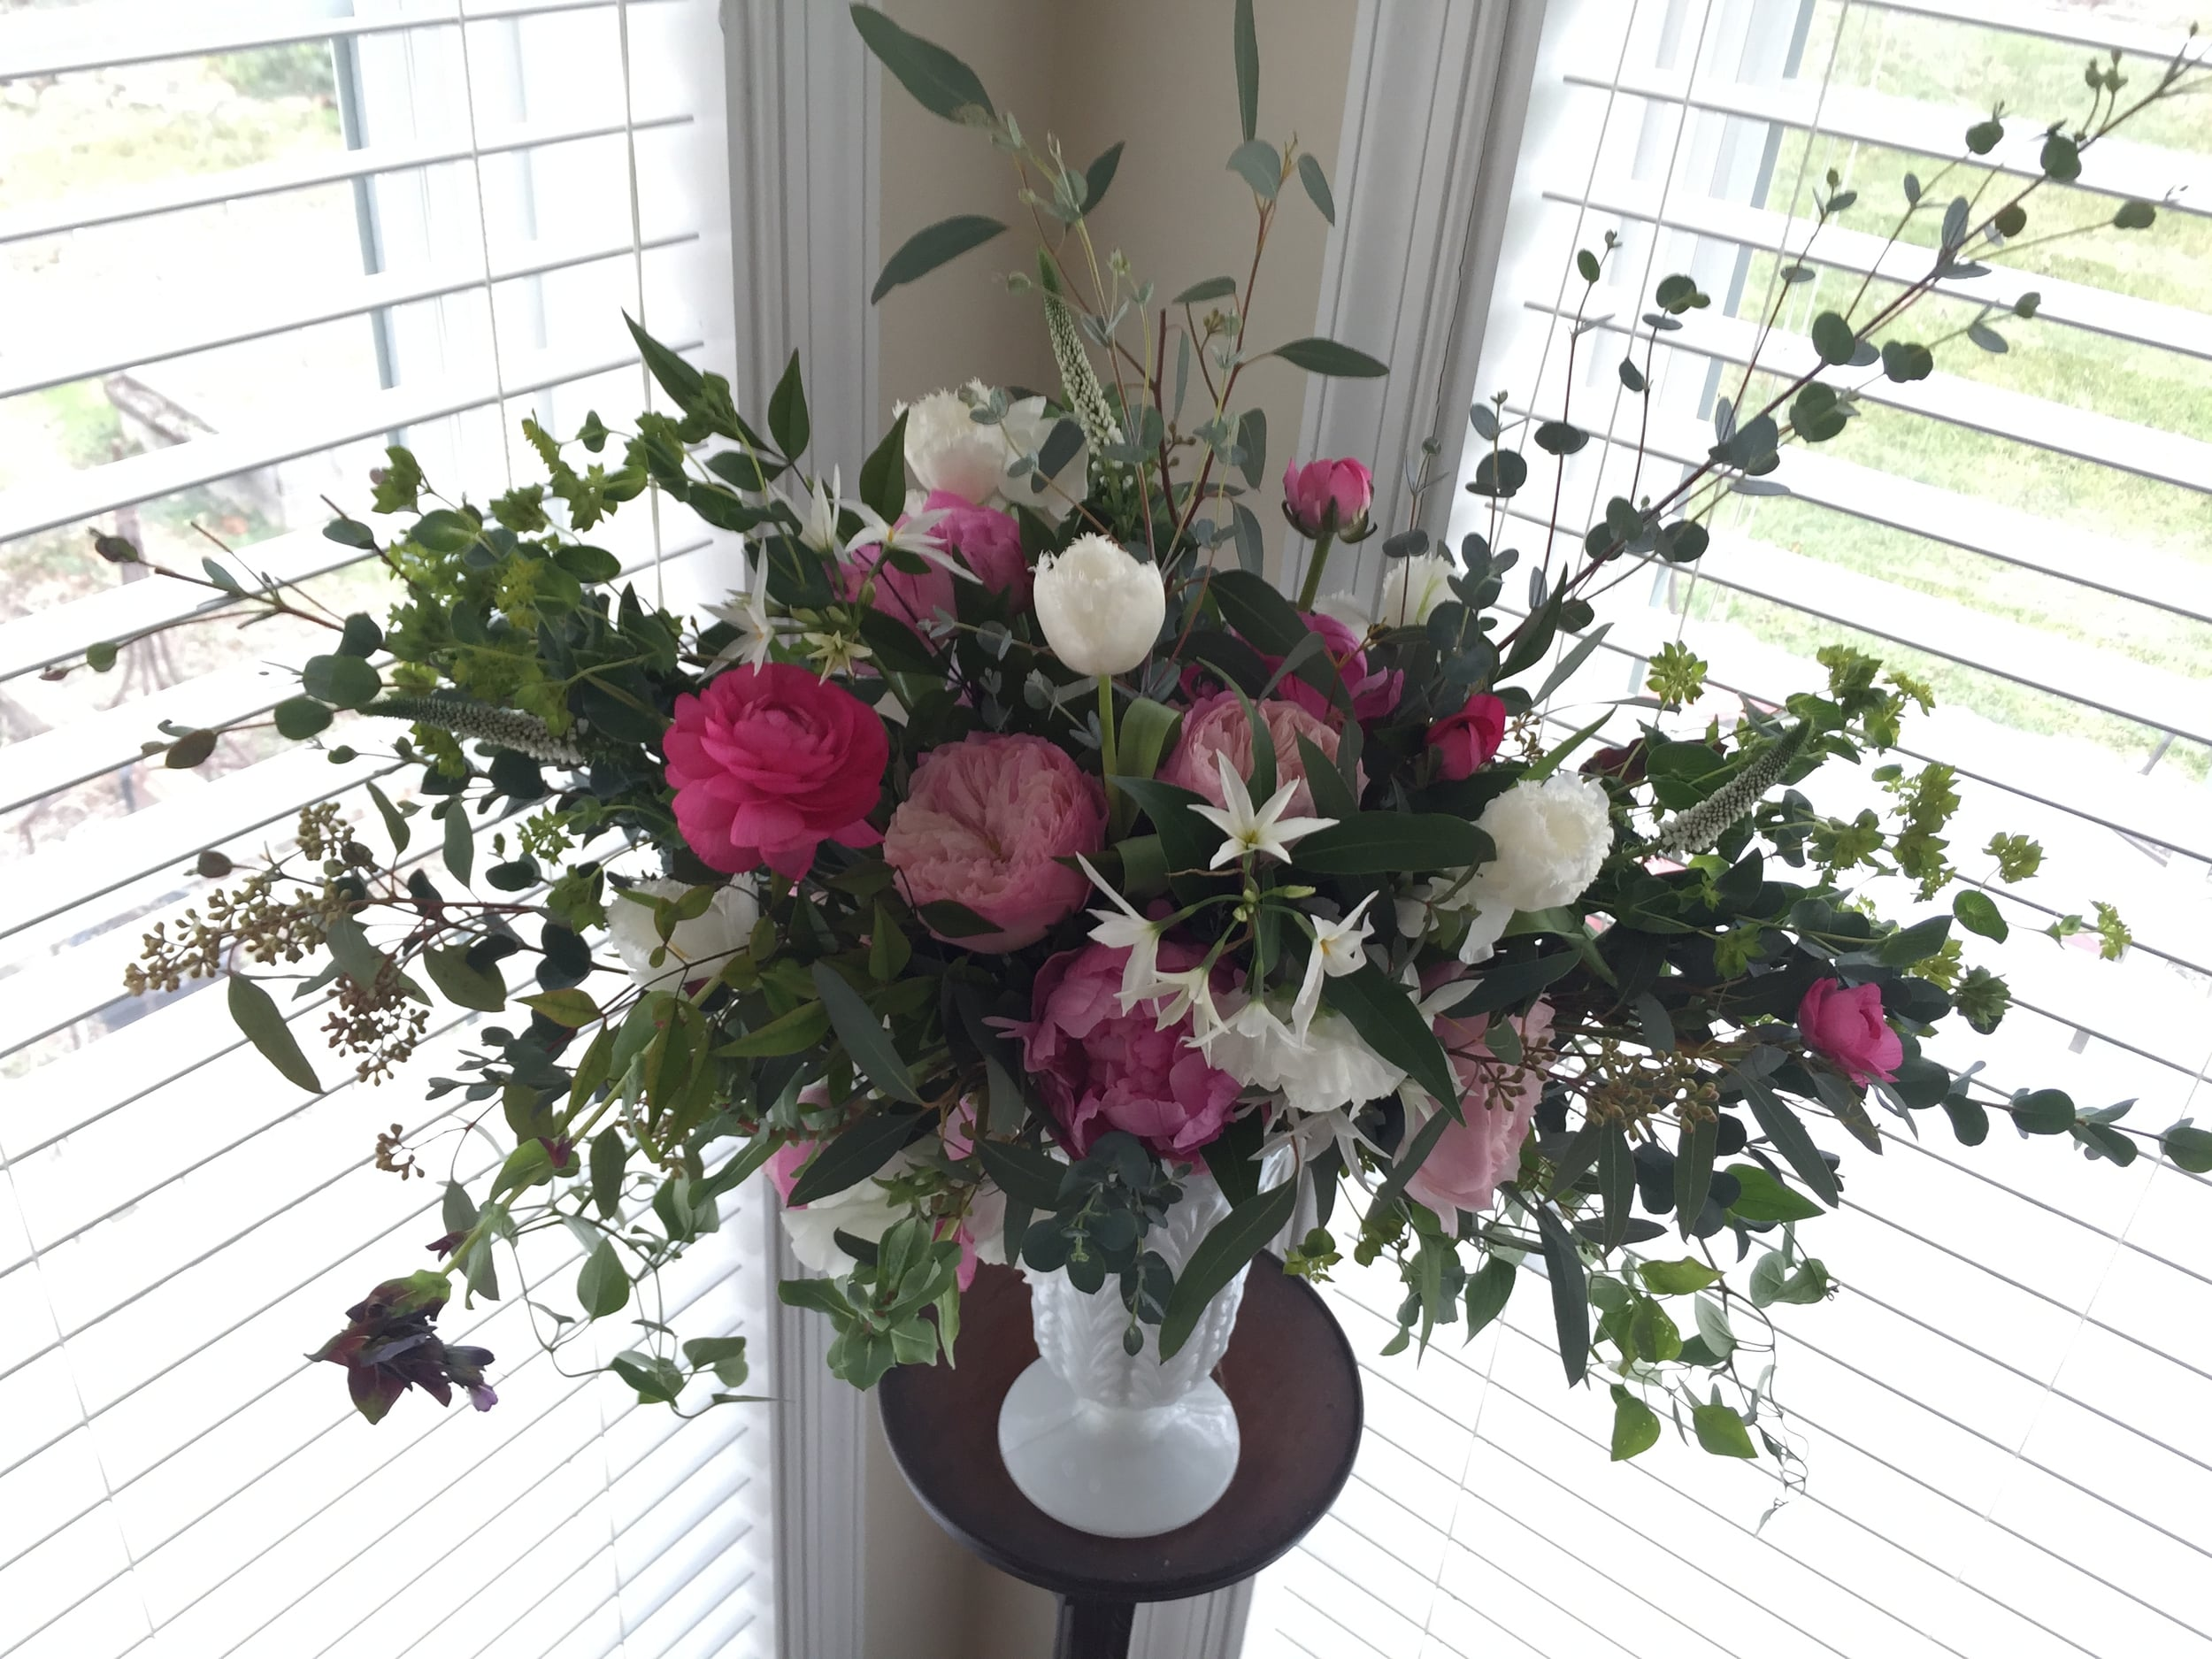 This bridal bouquet looks lovely and doubles as a centerpiece or accent arrangement when placed in this milk glass vase.